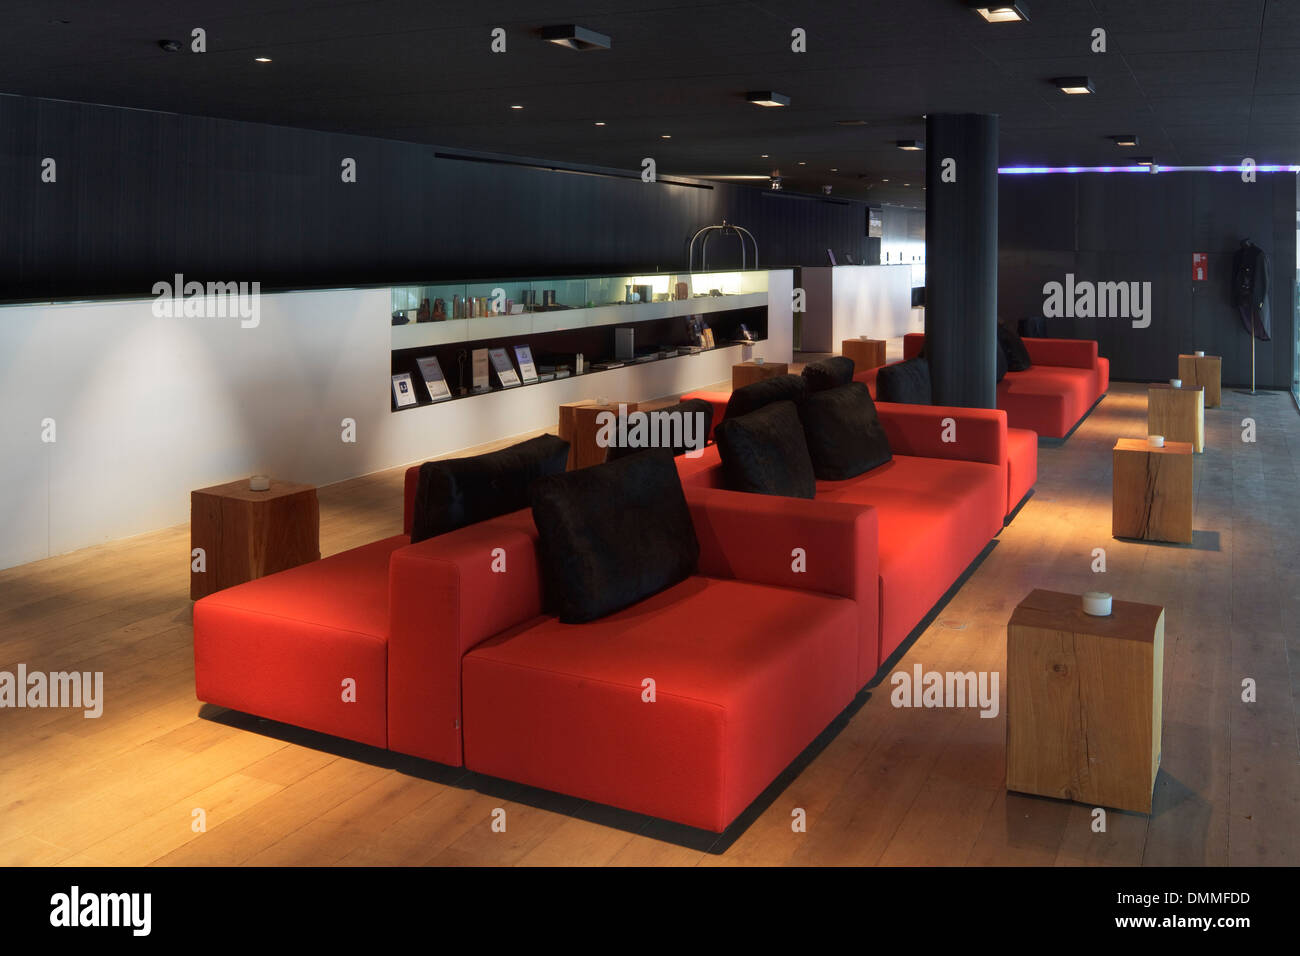 Seats And Sofas Genk Pcp Architects Stock Photos Pcp Architects Stock Images Alamy